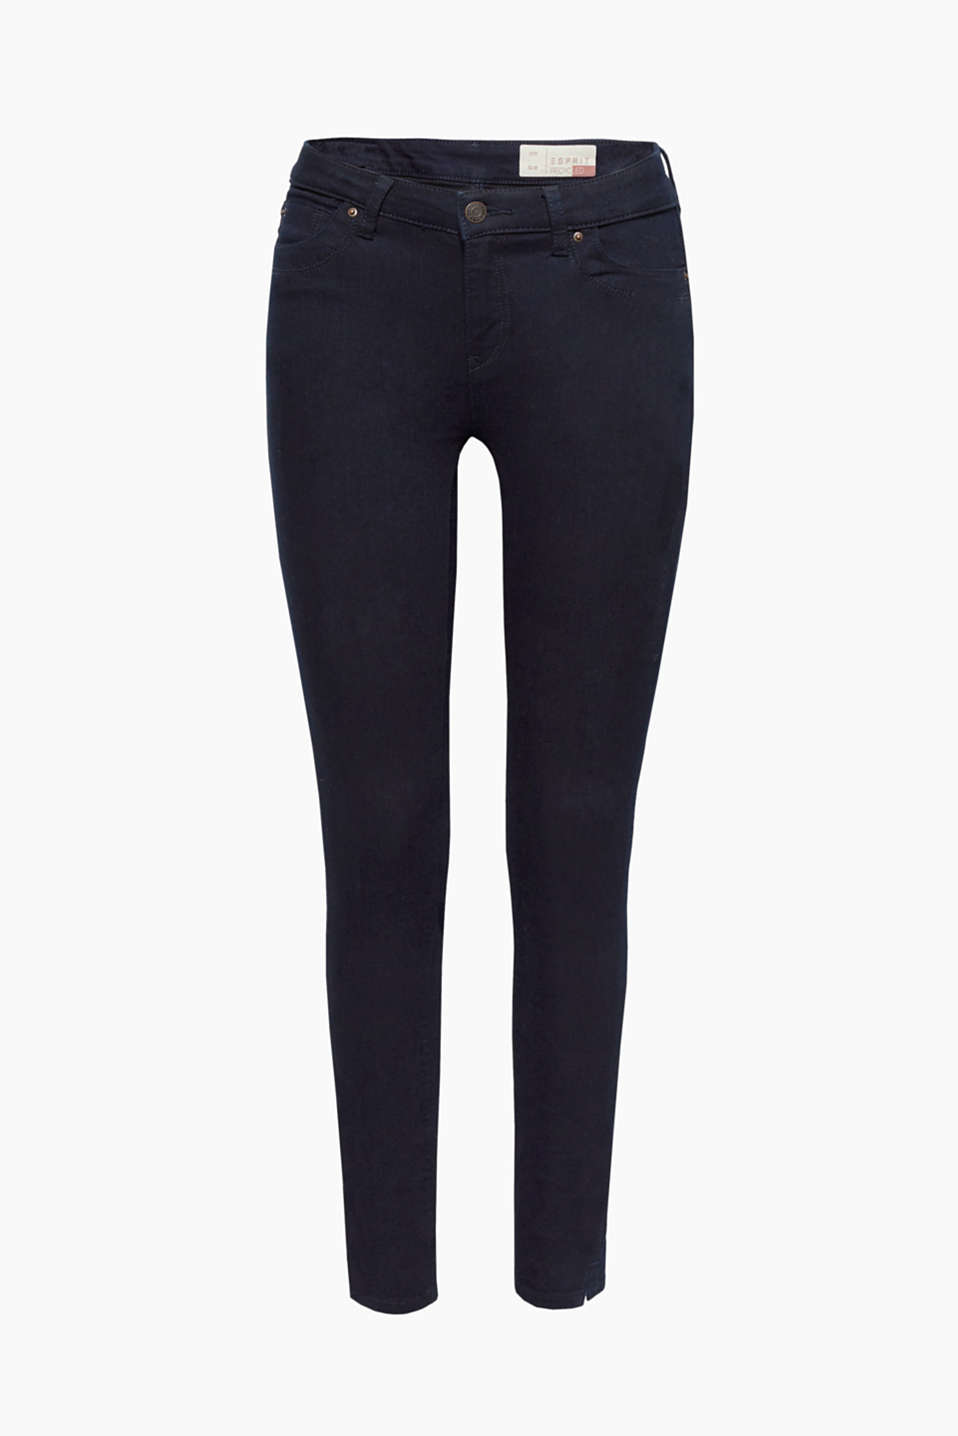 These jeans in strong stretch denim make the leg hems with side zips into cool head-turners!